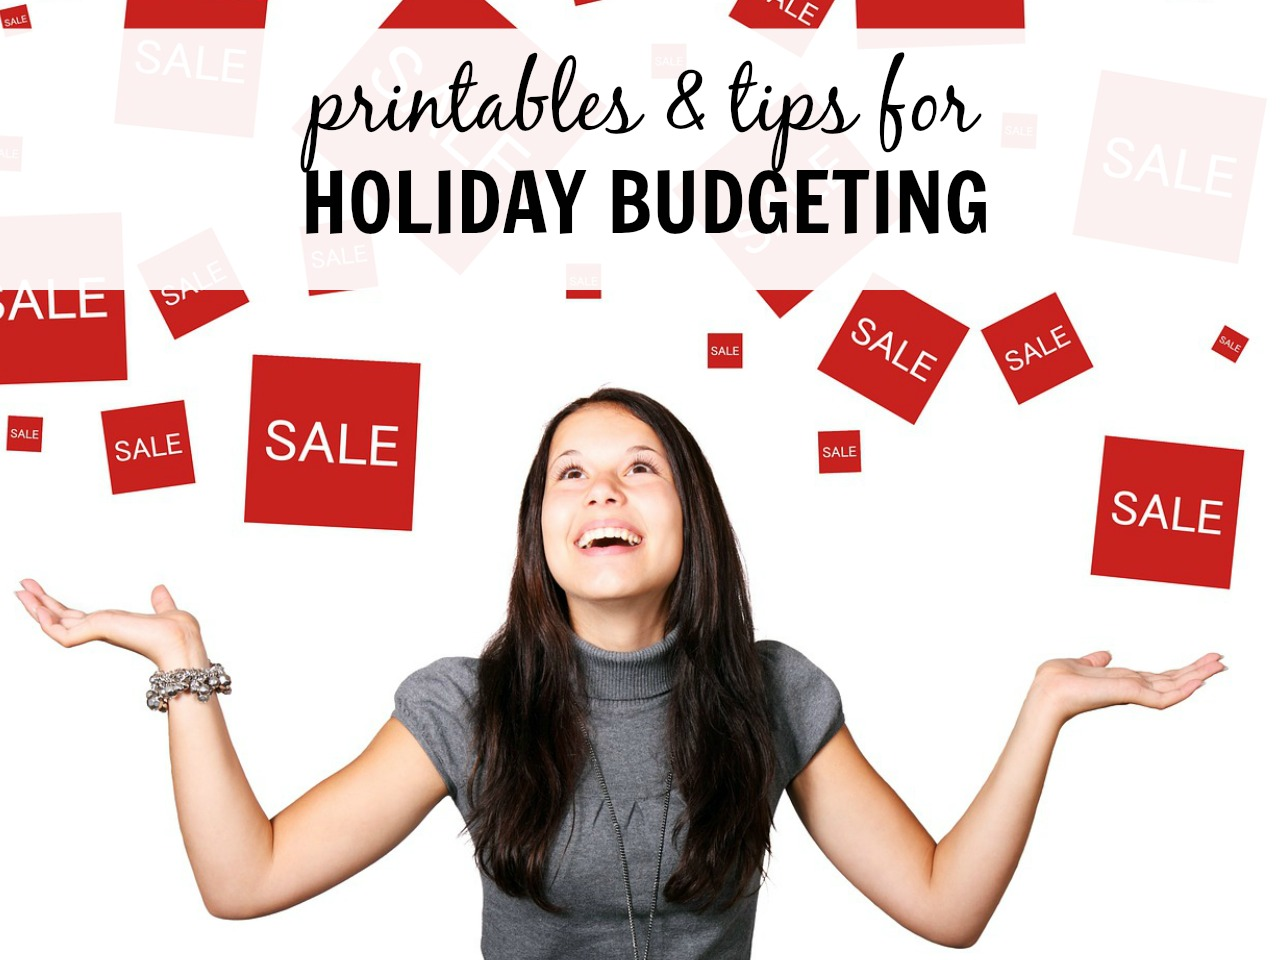 Printables and tips to keep you on track during the holidays